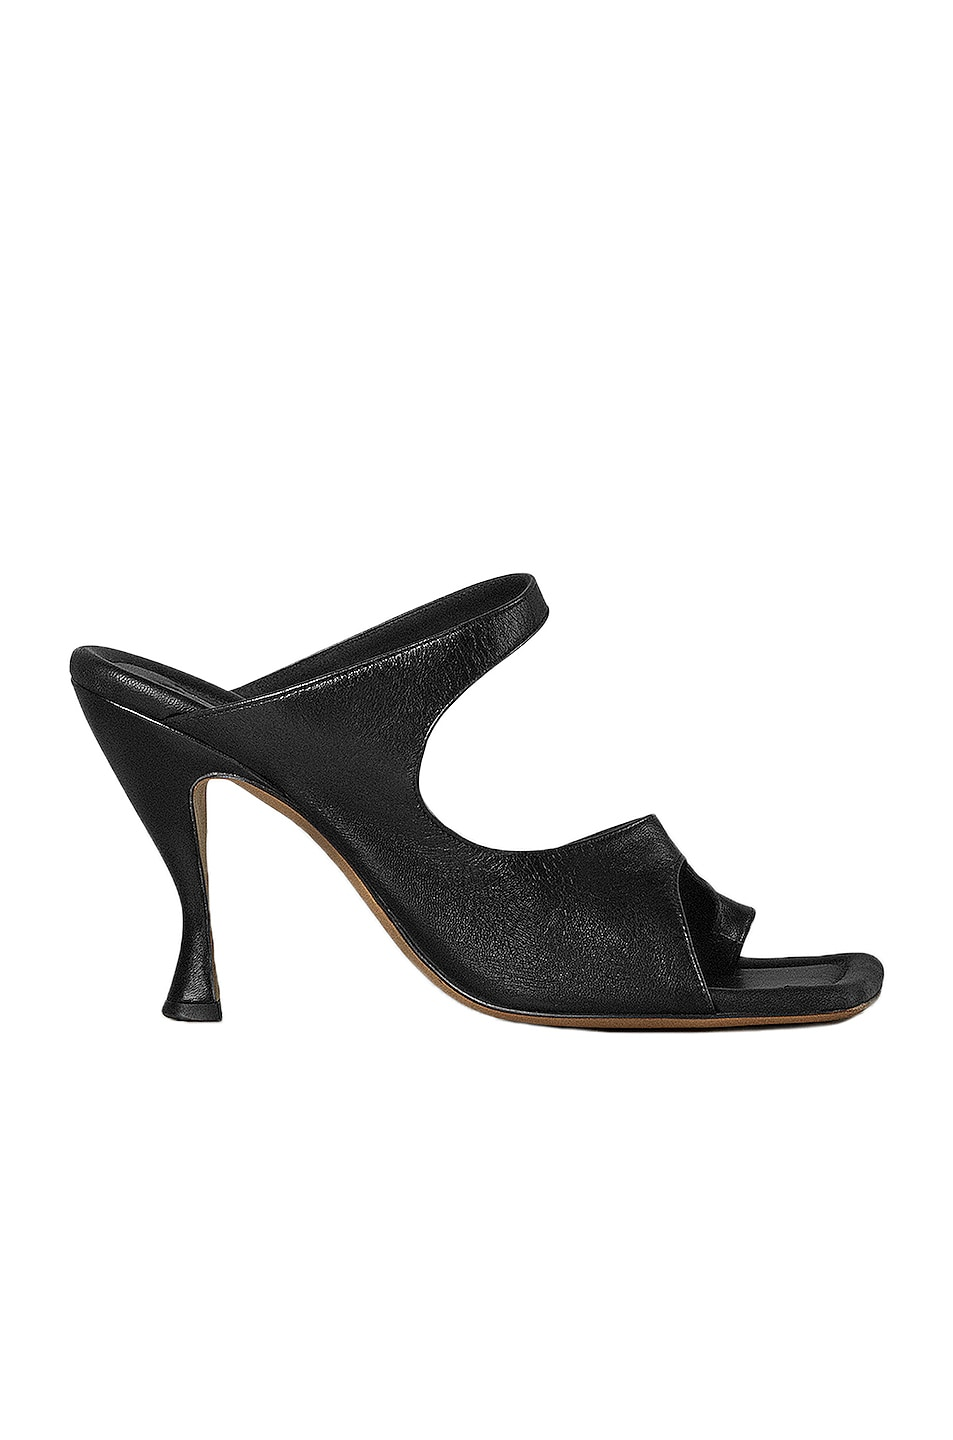 Image 1 of Bottega Veneta Leather Cutout Sandals in Black